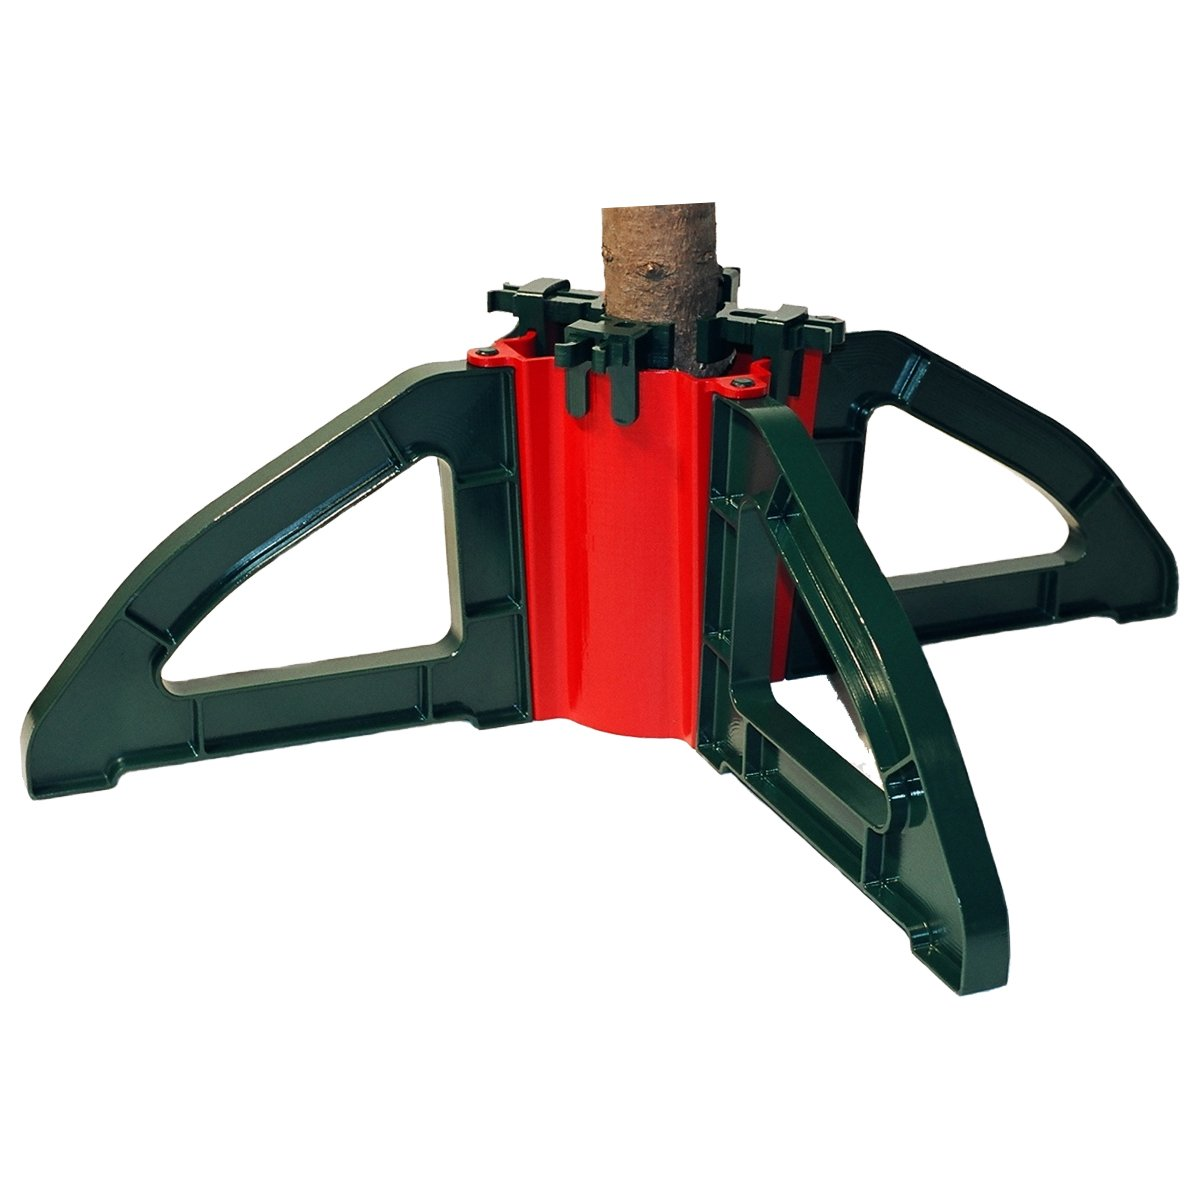 Omega Christmas Tree Stand- No Screws |Unbreakable Nylon Clamps |Holds up to a 10' tree | Holds 1 gallon of water| Collapsible for easy storage